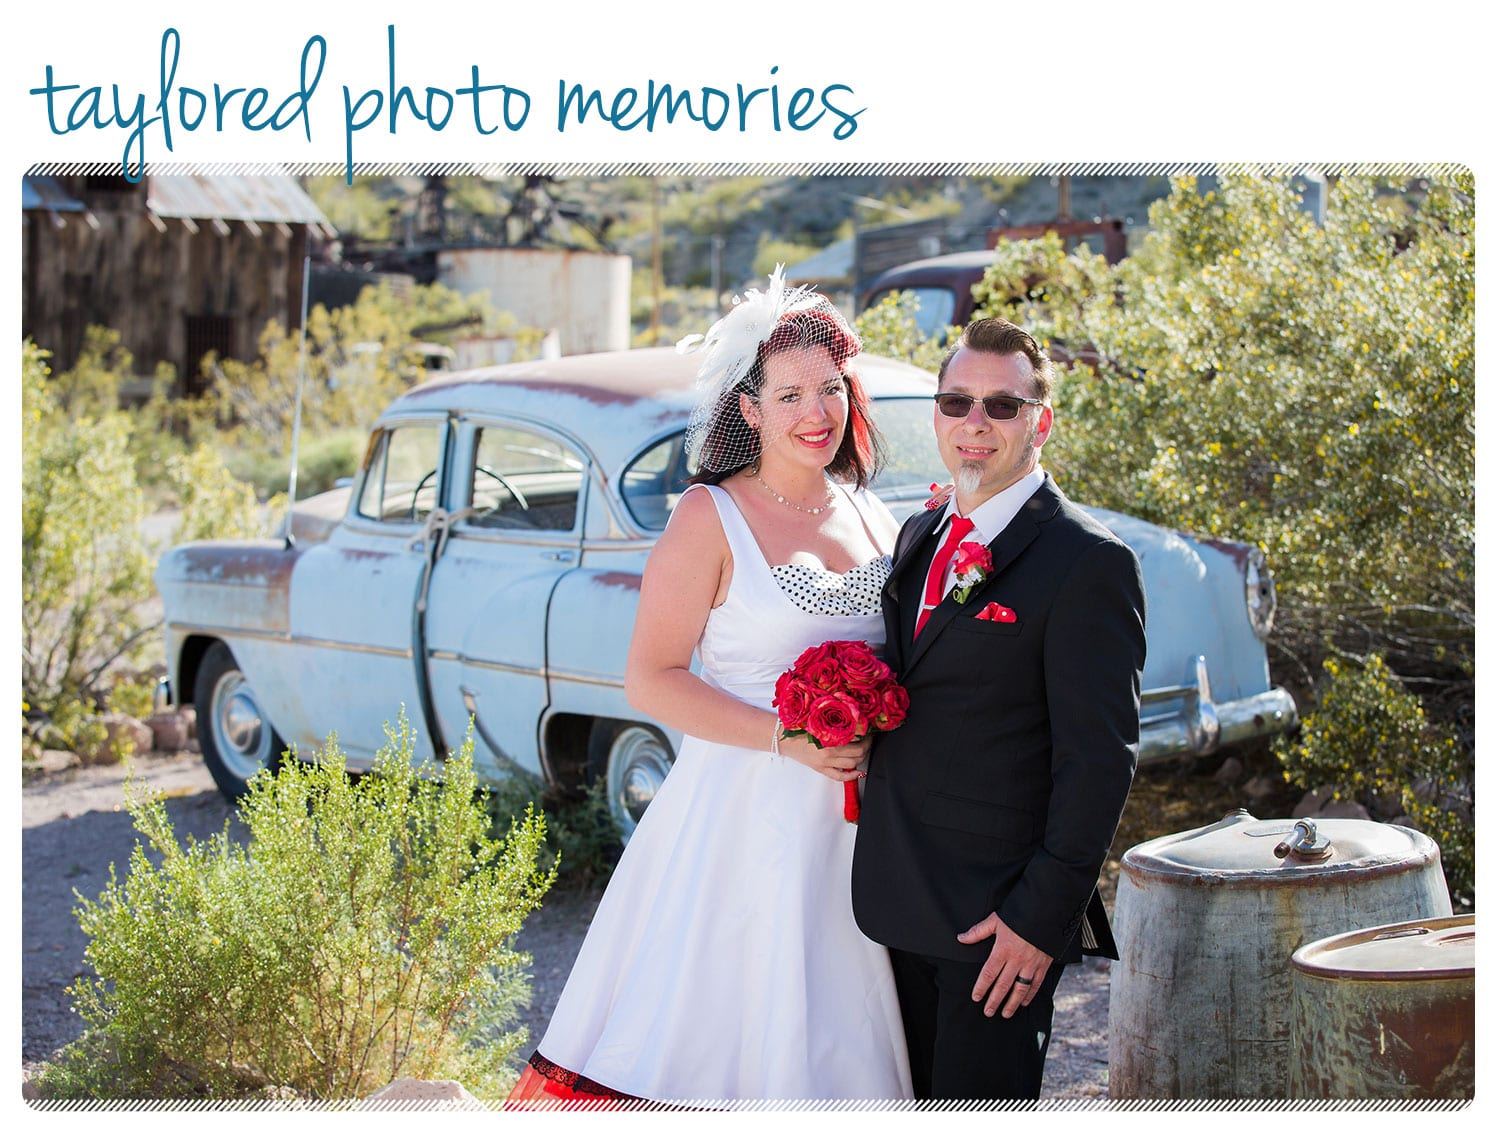 Rockabilly Wedding in Las Vegas at the Viva Las Vegas Rockabilly Weekend - Photo Shoot at Nelson's Landing, Eldorado Canyon